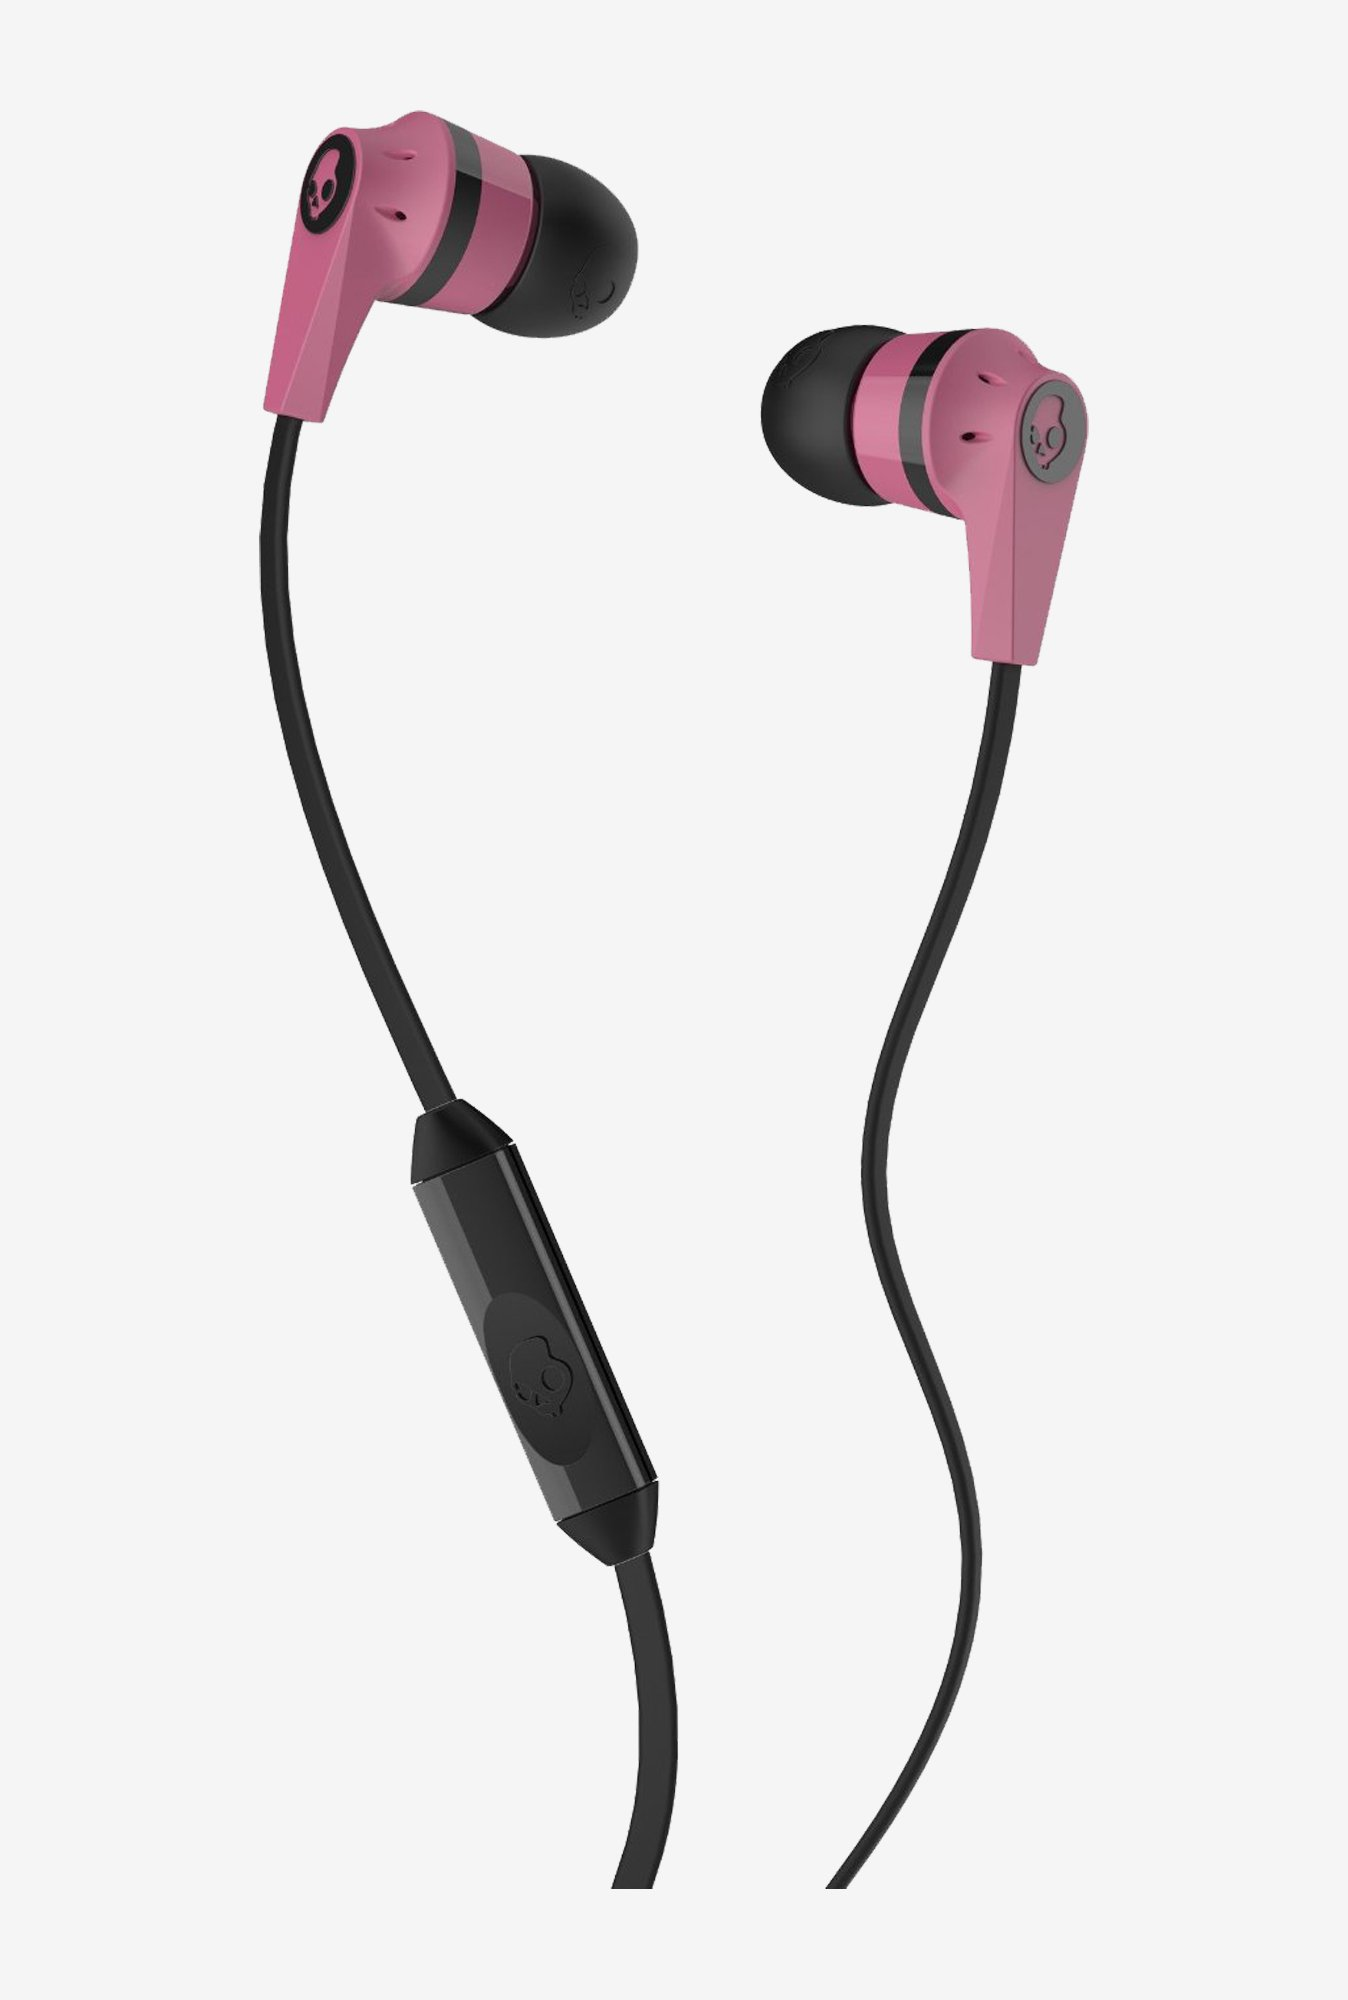 Skullcandy S2IKDY-133 In the Ear Headphone (Pink/Black)